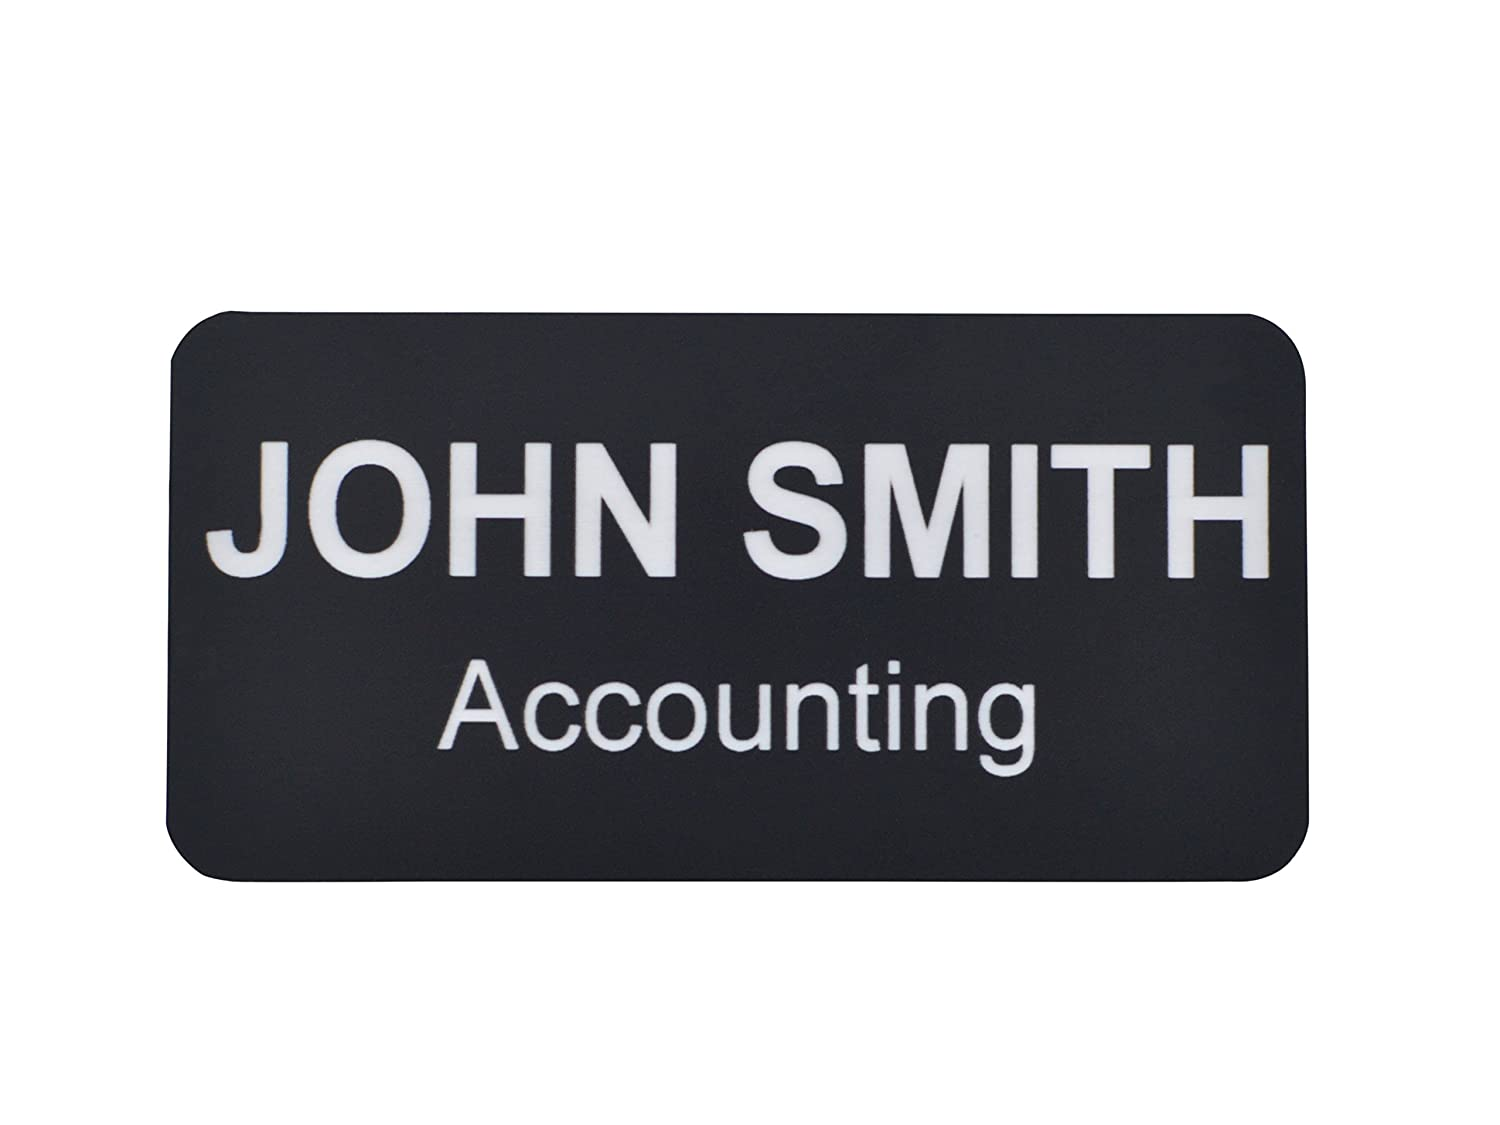 Name Badges | Name Tags | Engraved Identification - Up to 3 Lines of Engraving Included, 2 Sizes & 14 Colors, Pin or Magnetic Backing (1x3, Blue/White) Providence Engraving